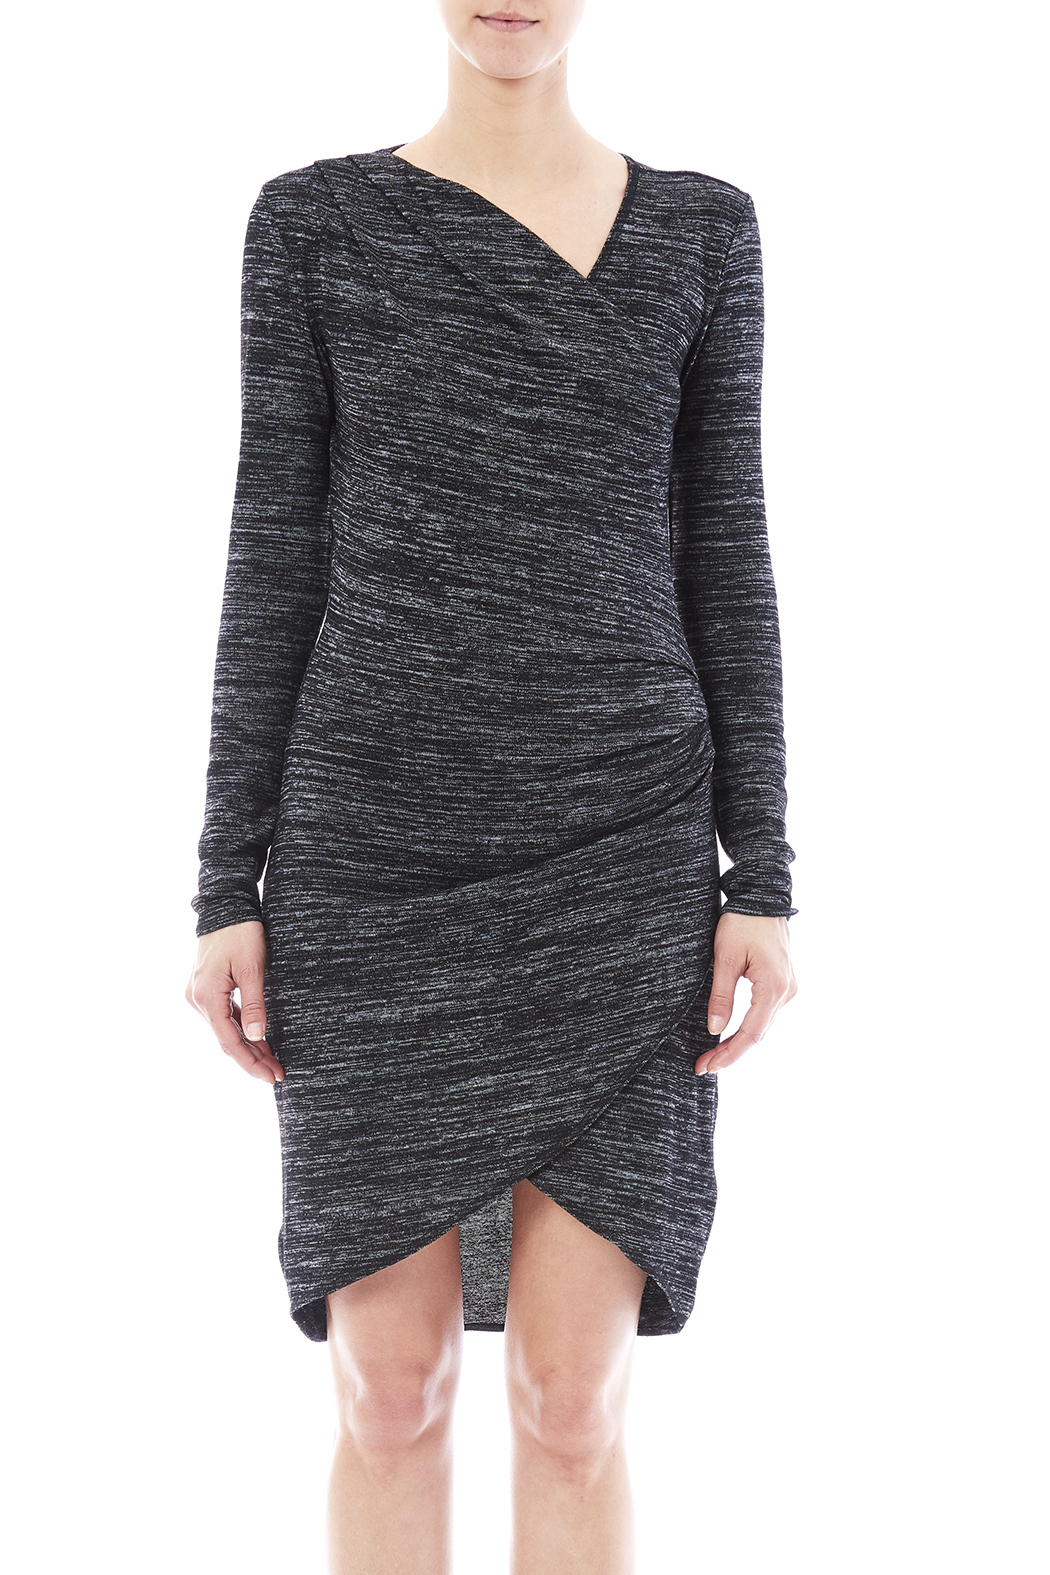 RD Style Wrap Knit Dress - Side Cropped Image